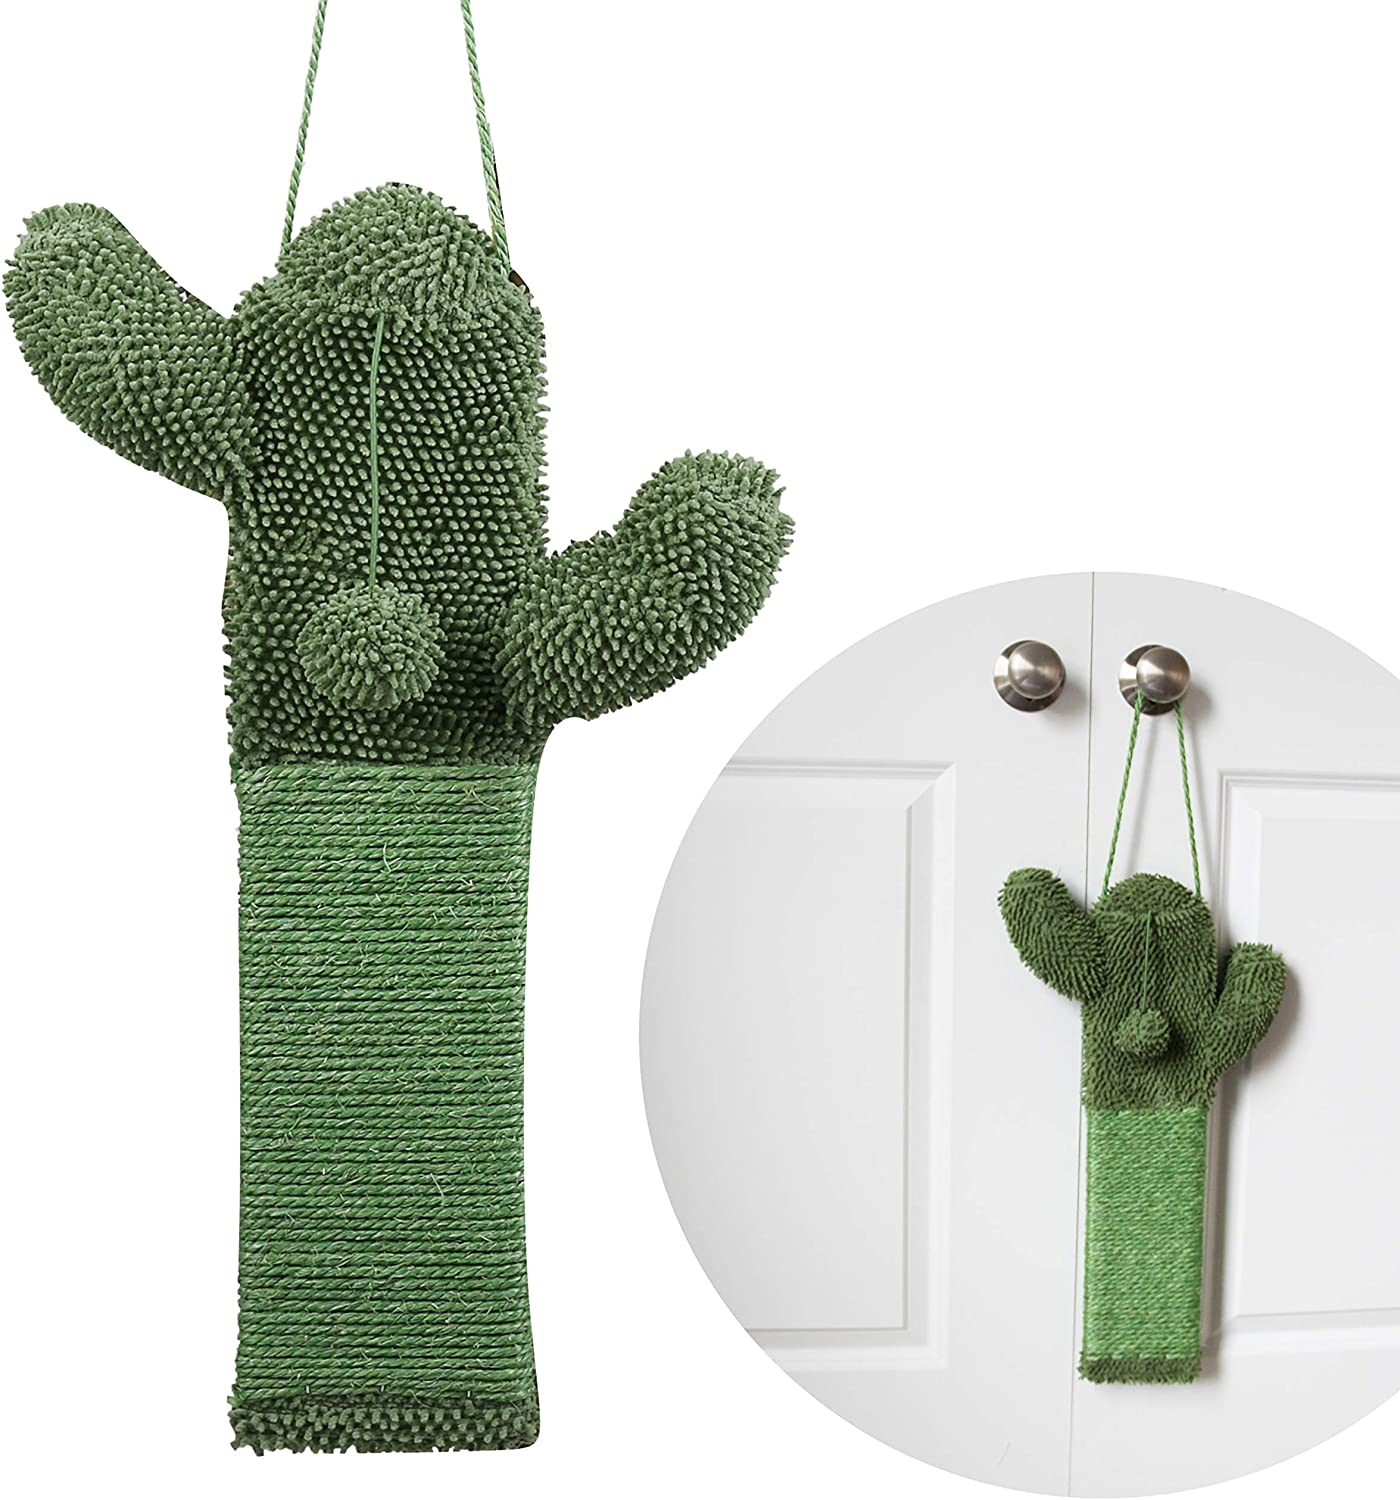 PetnPurr Cactus Cat Scratcher – Protect Your Furniture with Natural Sisal Scratching Posts and Pads